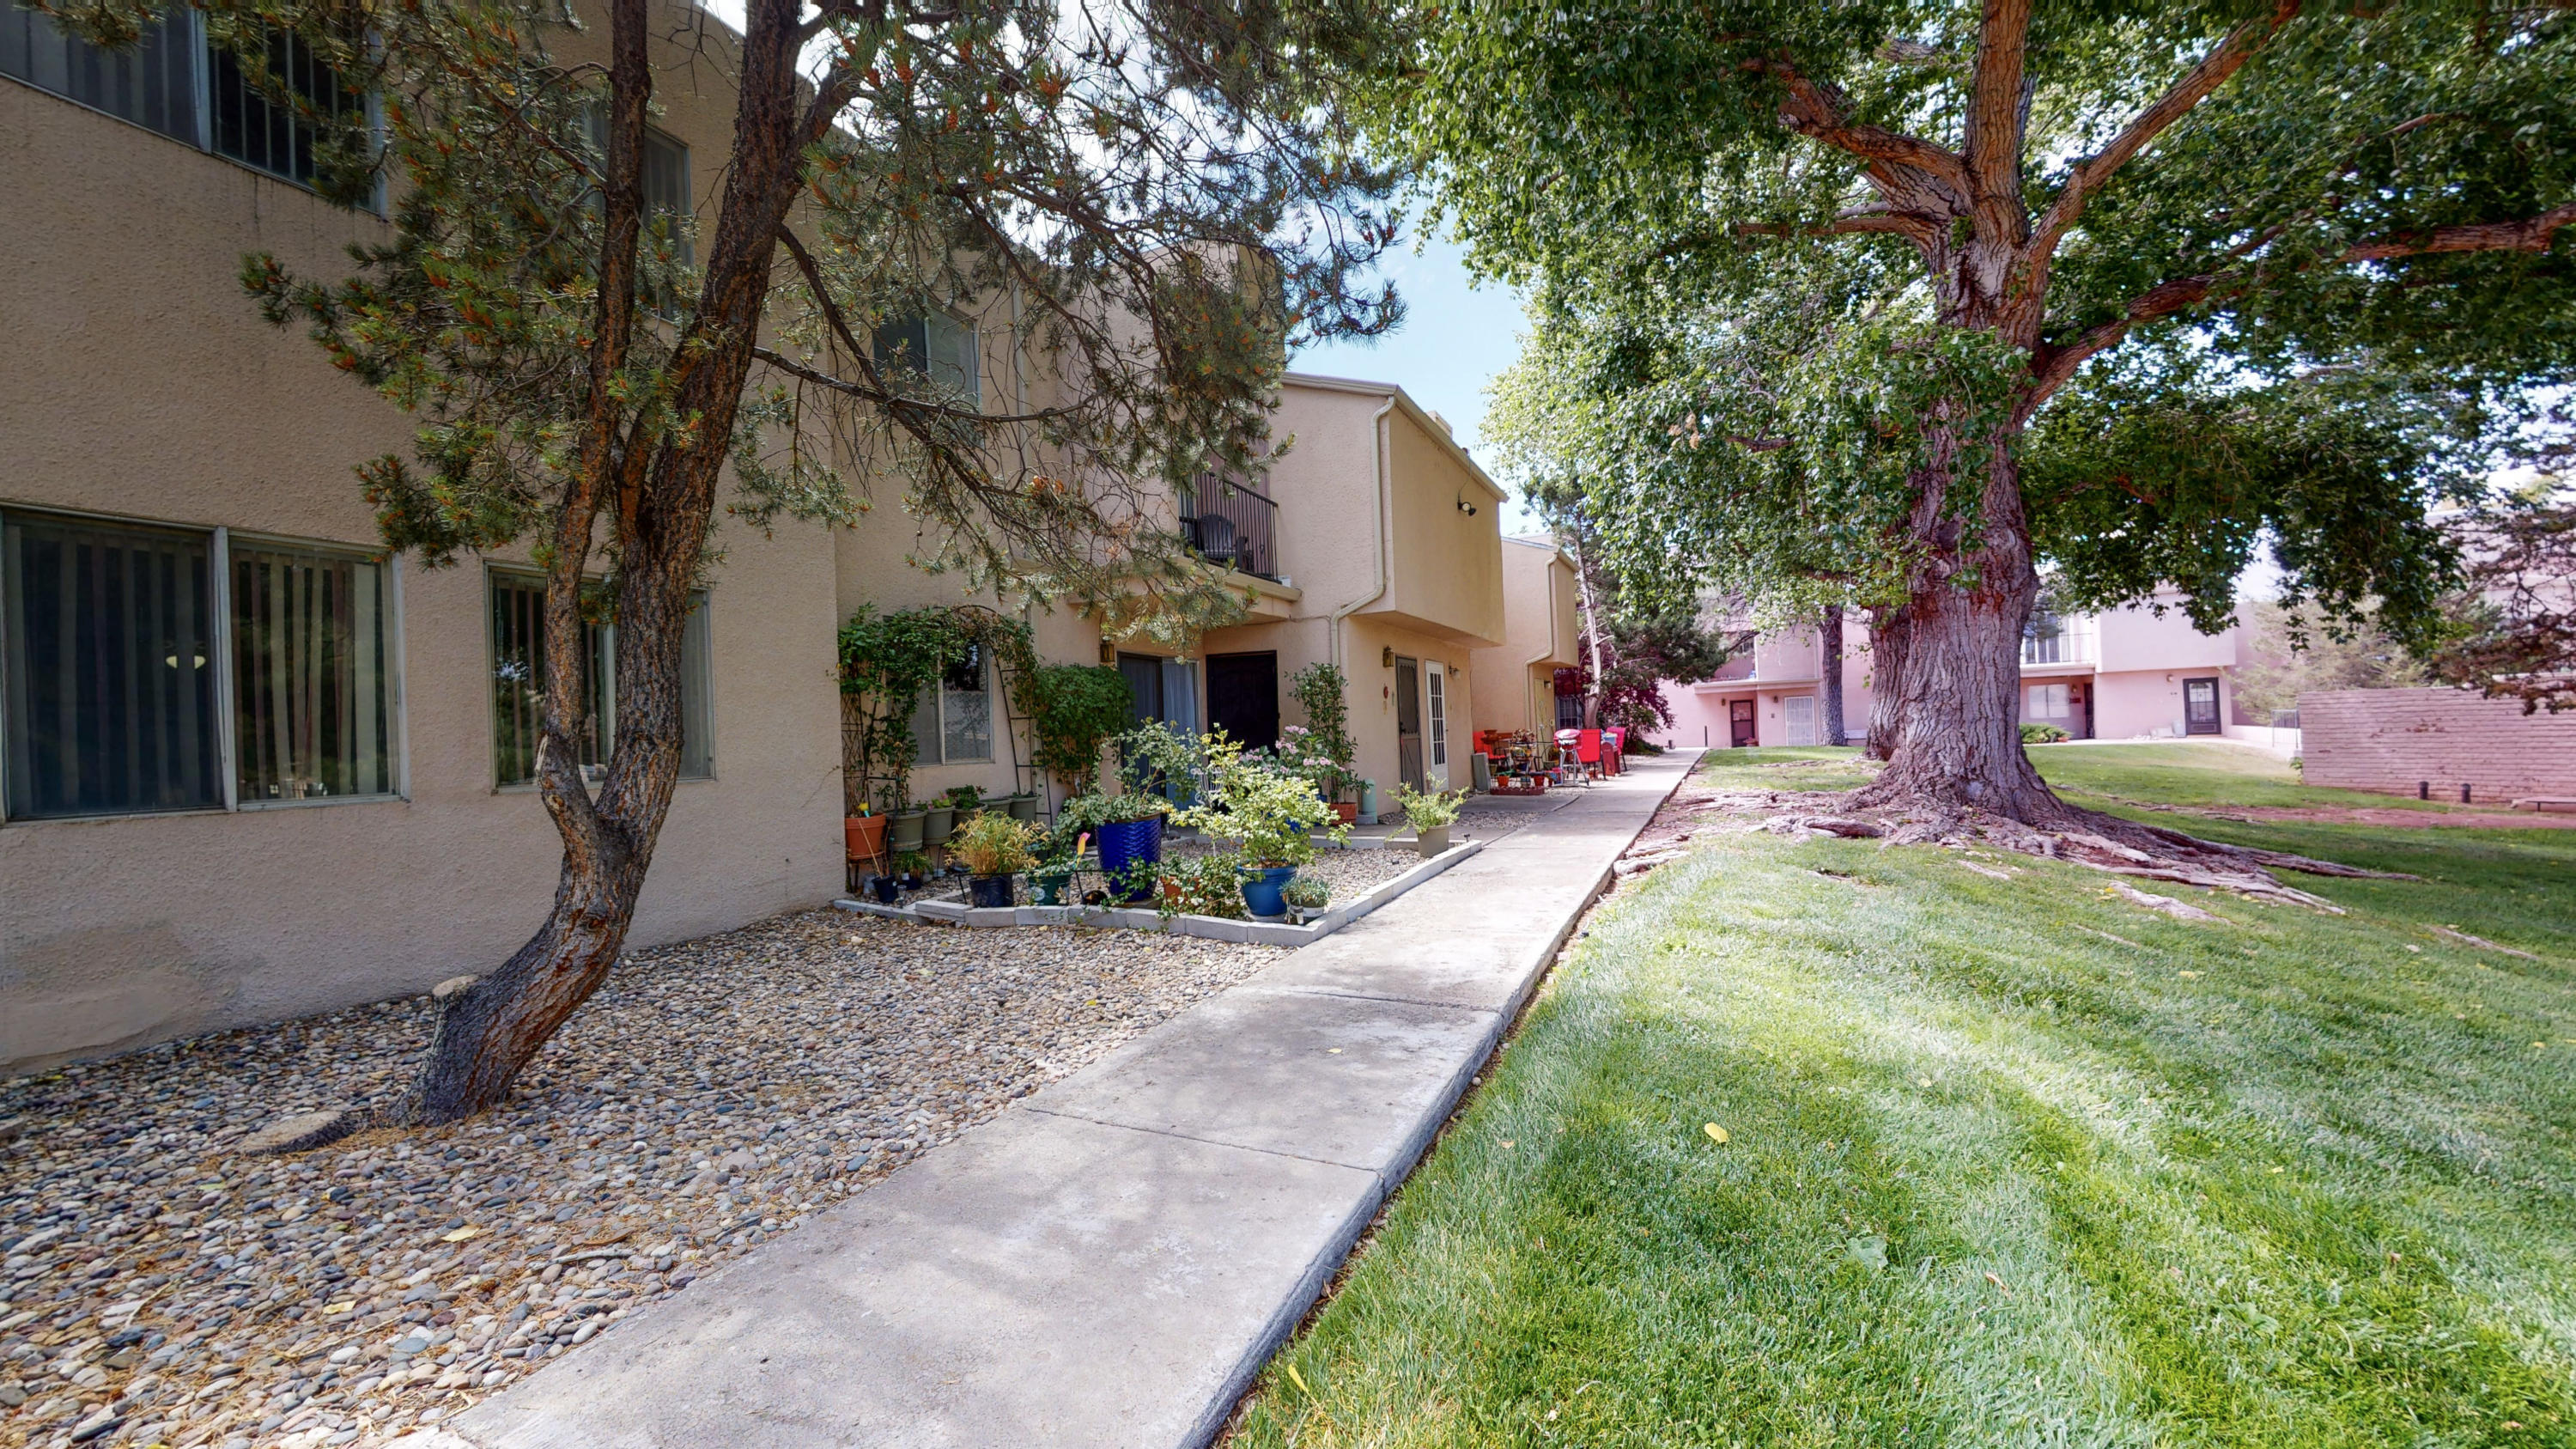 Welcome to Unit A-1 of Sandia Plaza Condominiums! This 1 bedroom 1 bathroom condo has 2 living areas, a covered carport parking spot, all appliances that convey, and one of the few units with a laundry in the home. HOA fee covers water/sewer/trash as well as Exterior of the Residence, including Roof and Common Areas/Greens, Community Pool (currently closed), Club House, on-site Laundry and Building Insurance. Come see it today!